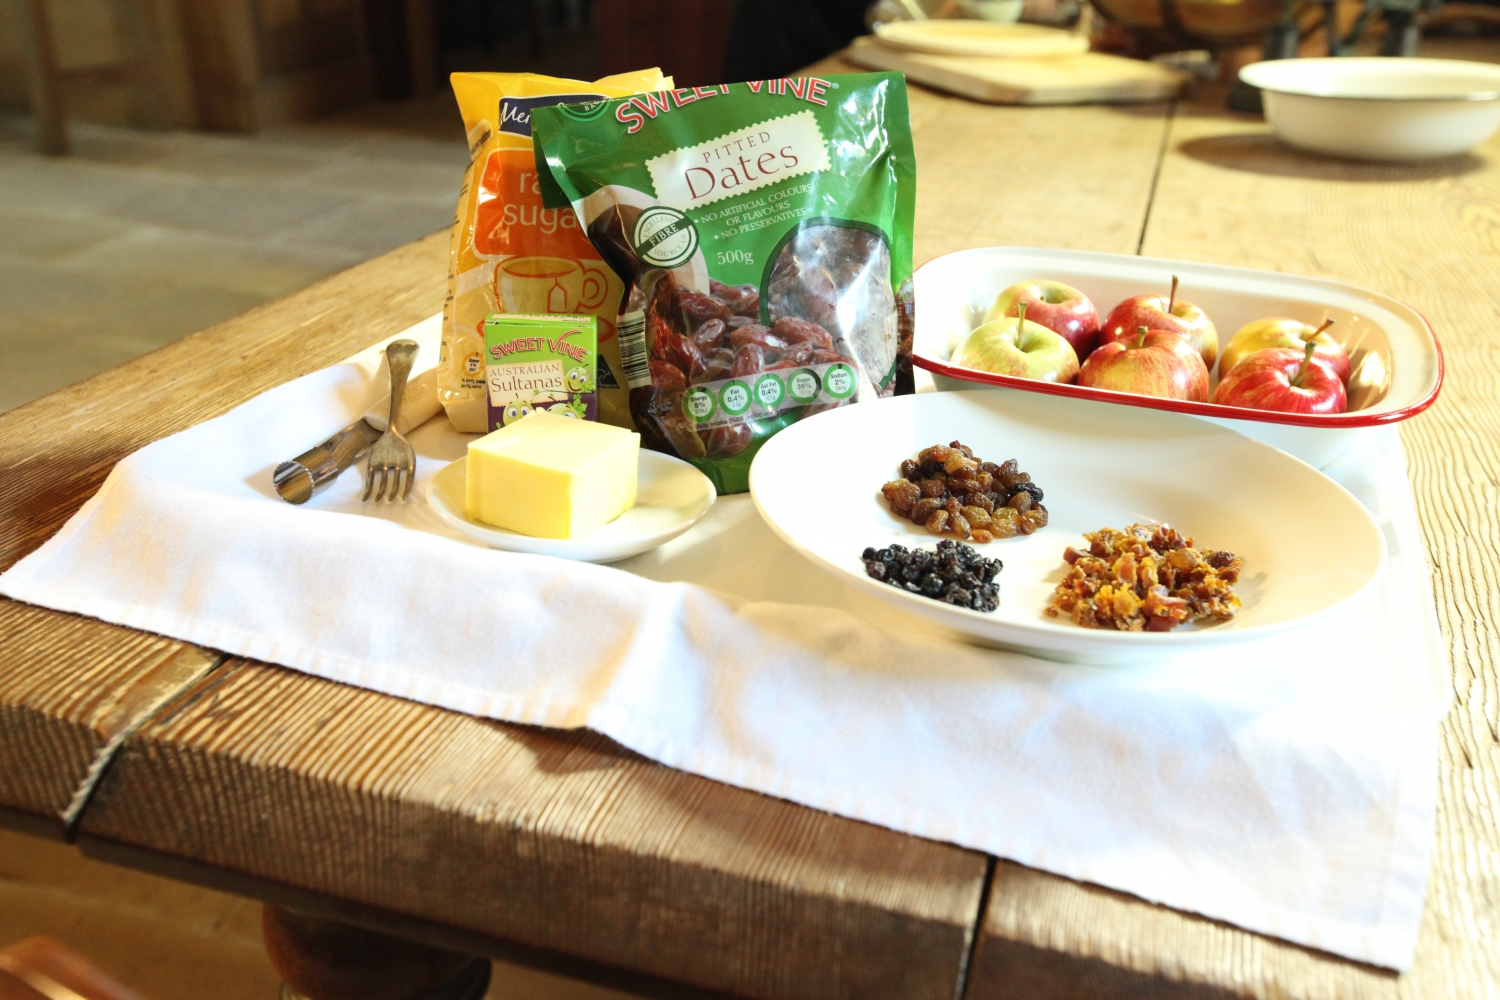 Close up of ingredients and equipment on wooden table: packet of raw sugar, packet of dates, baking tray with 6 apples, plate with sultanas and other dried fruit, slab of butter, apple corer and table fork.